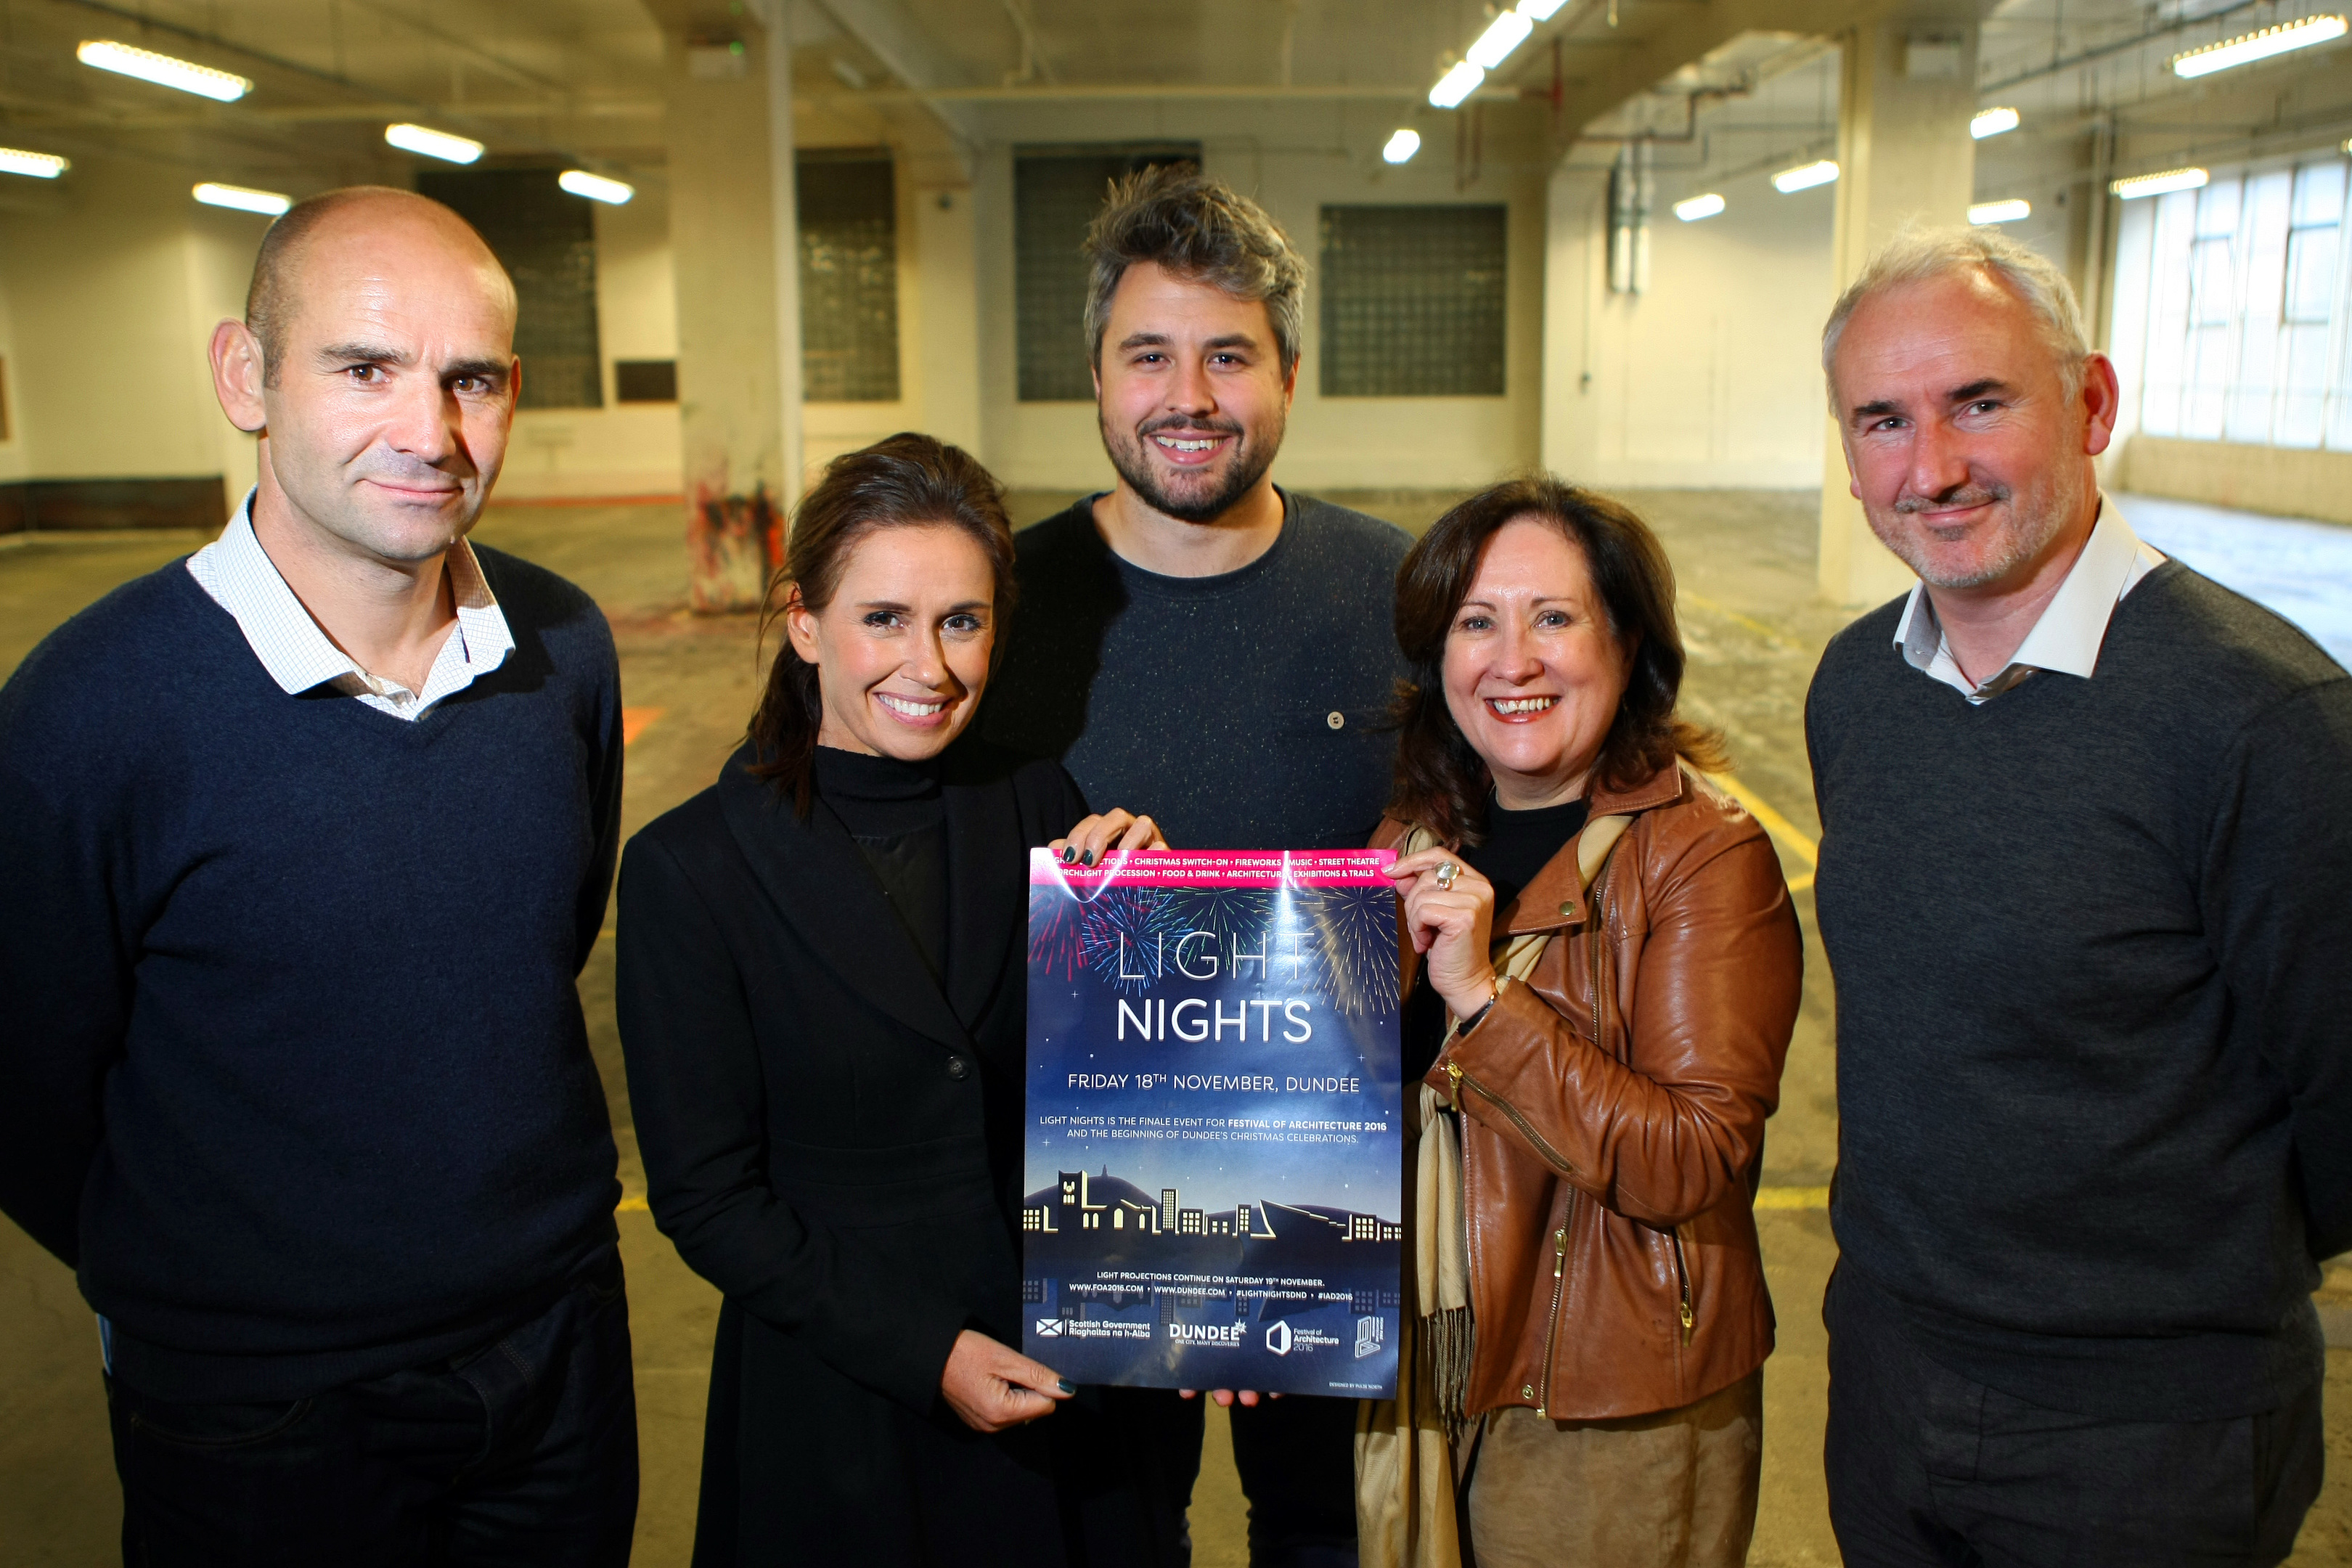 Organisers of the Light Night celebrations - L-R: Philip Levack - Nicol Russell Studios, Jennifer Caswell, Sam Patterson, Karen Cunningham and Ged Young - Festival Coordinator (Dundee chapter).